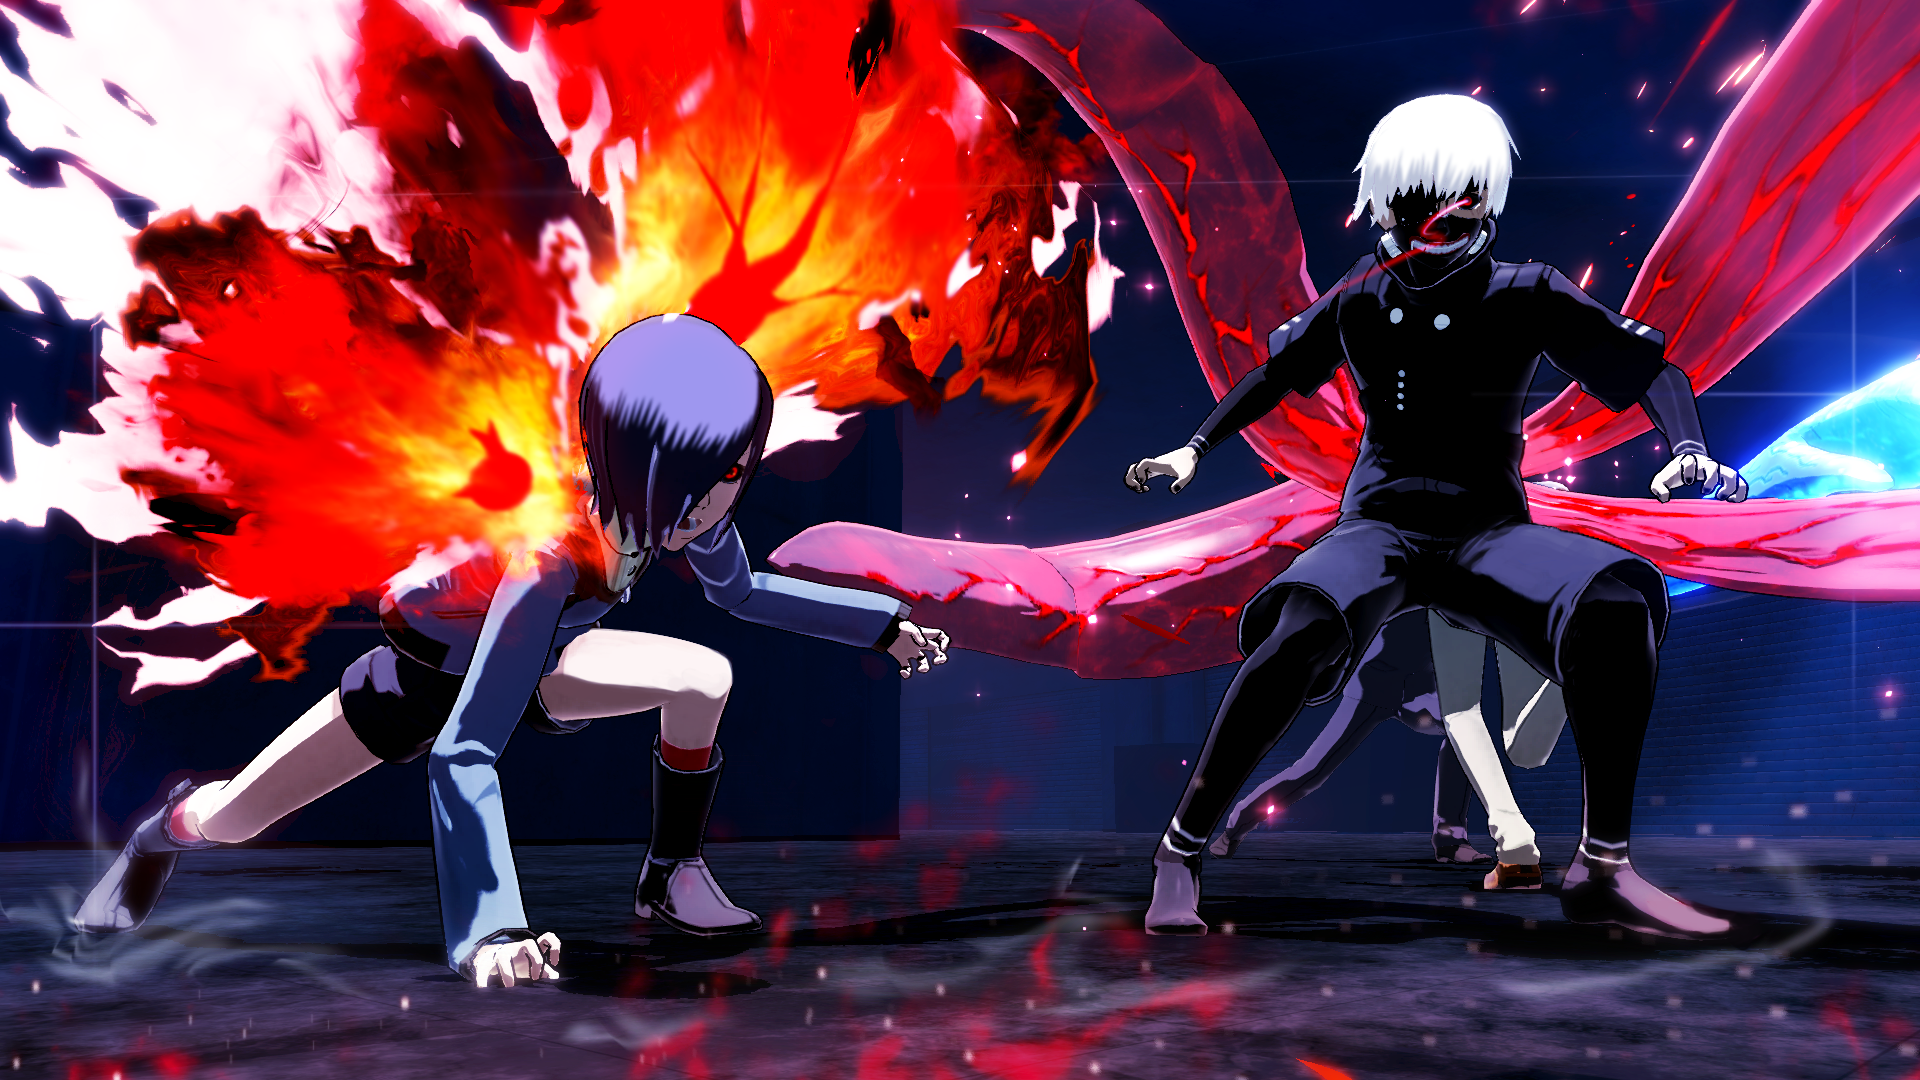 Tokyo Ghoul Re Call To Exist Announcement Trailer Tokyo Ghoul Wallpapers Tokyo Ghoul Anime Tokyo Ghoul Pictures